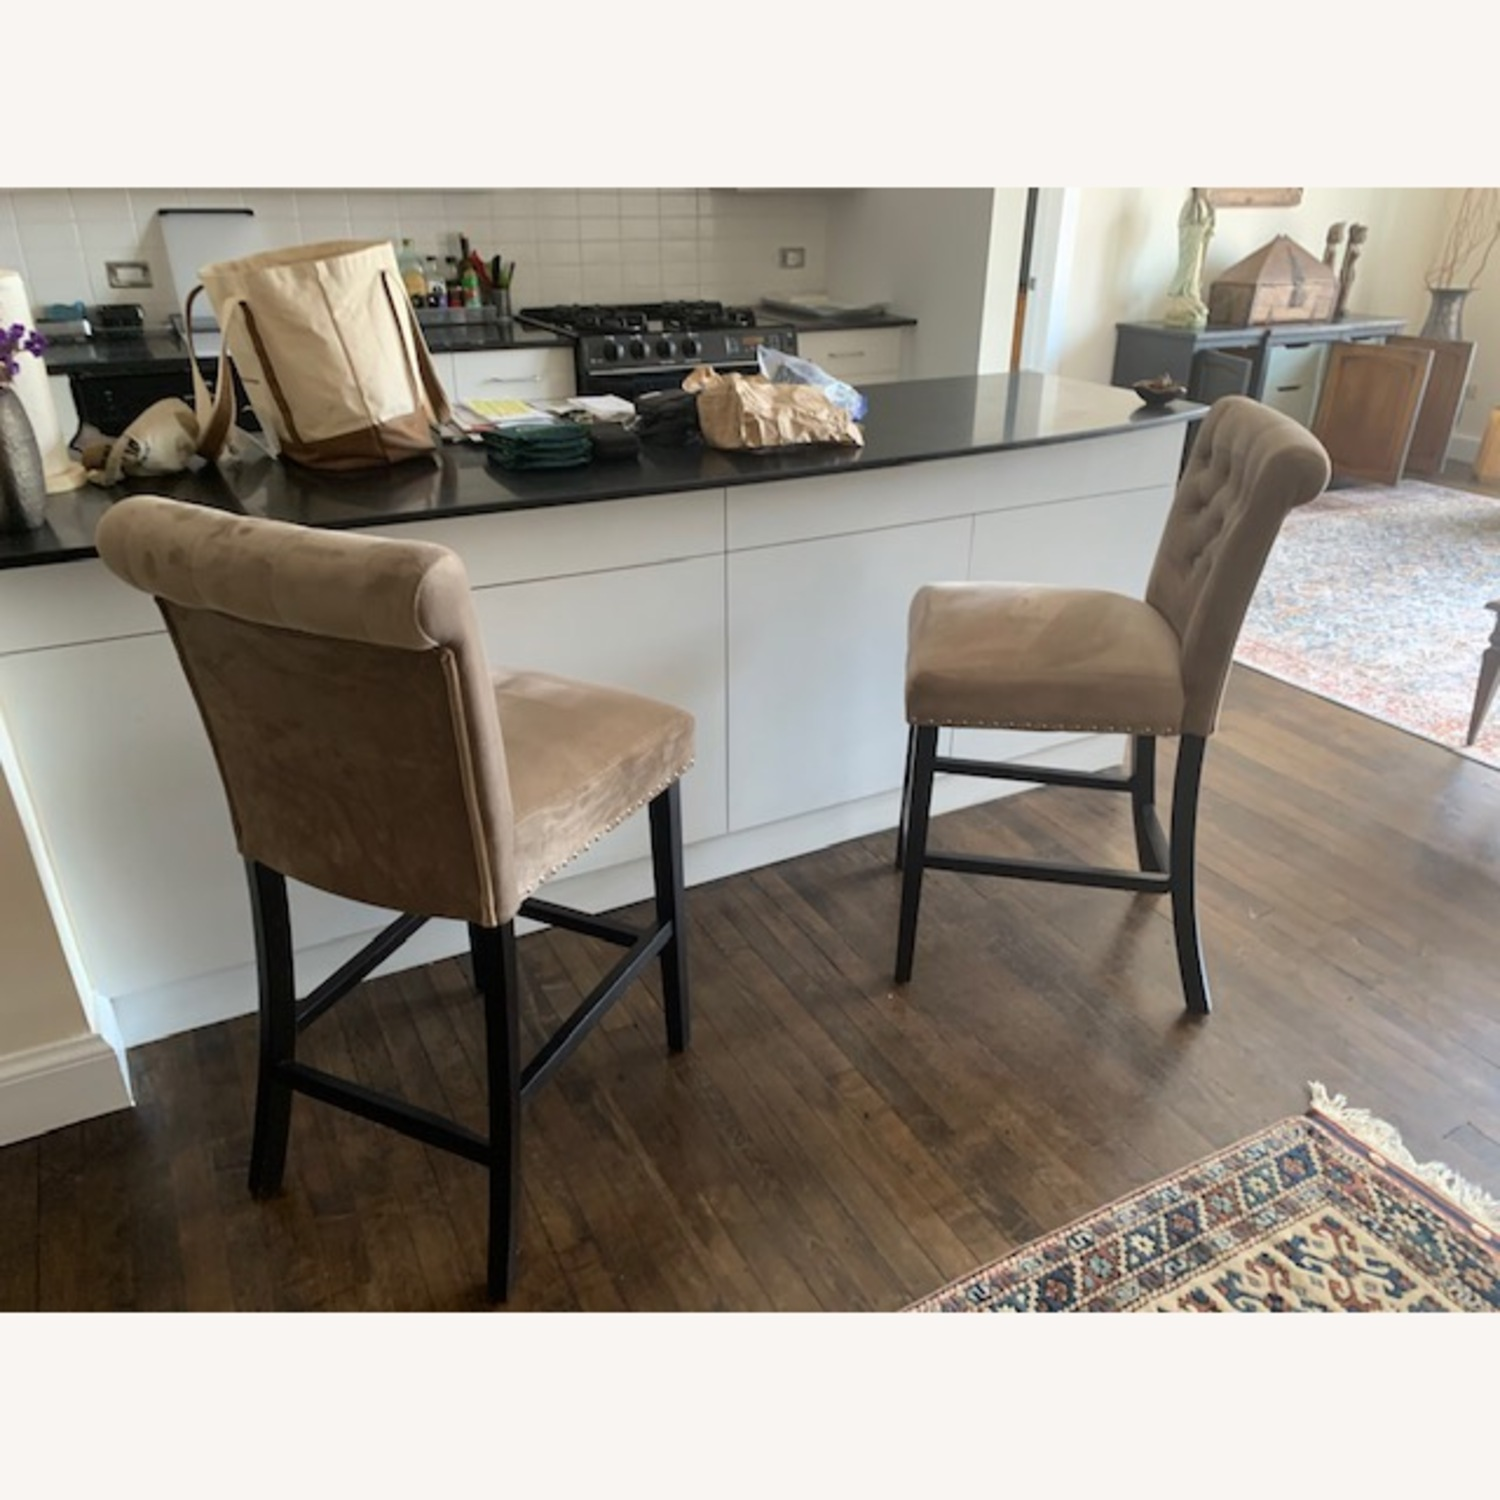 Taupe Velvet Counter Stools - image-1